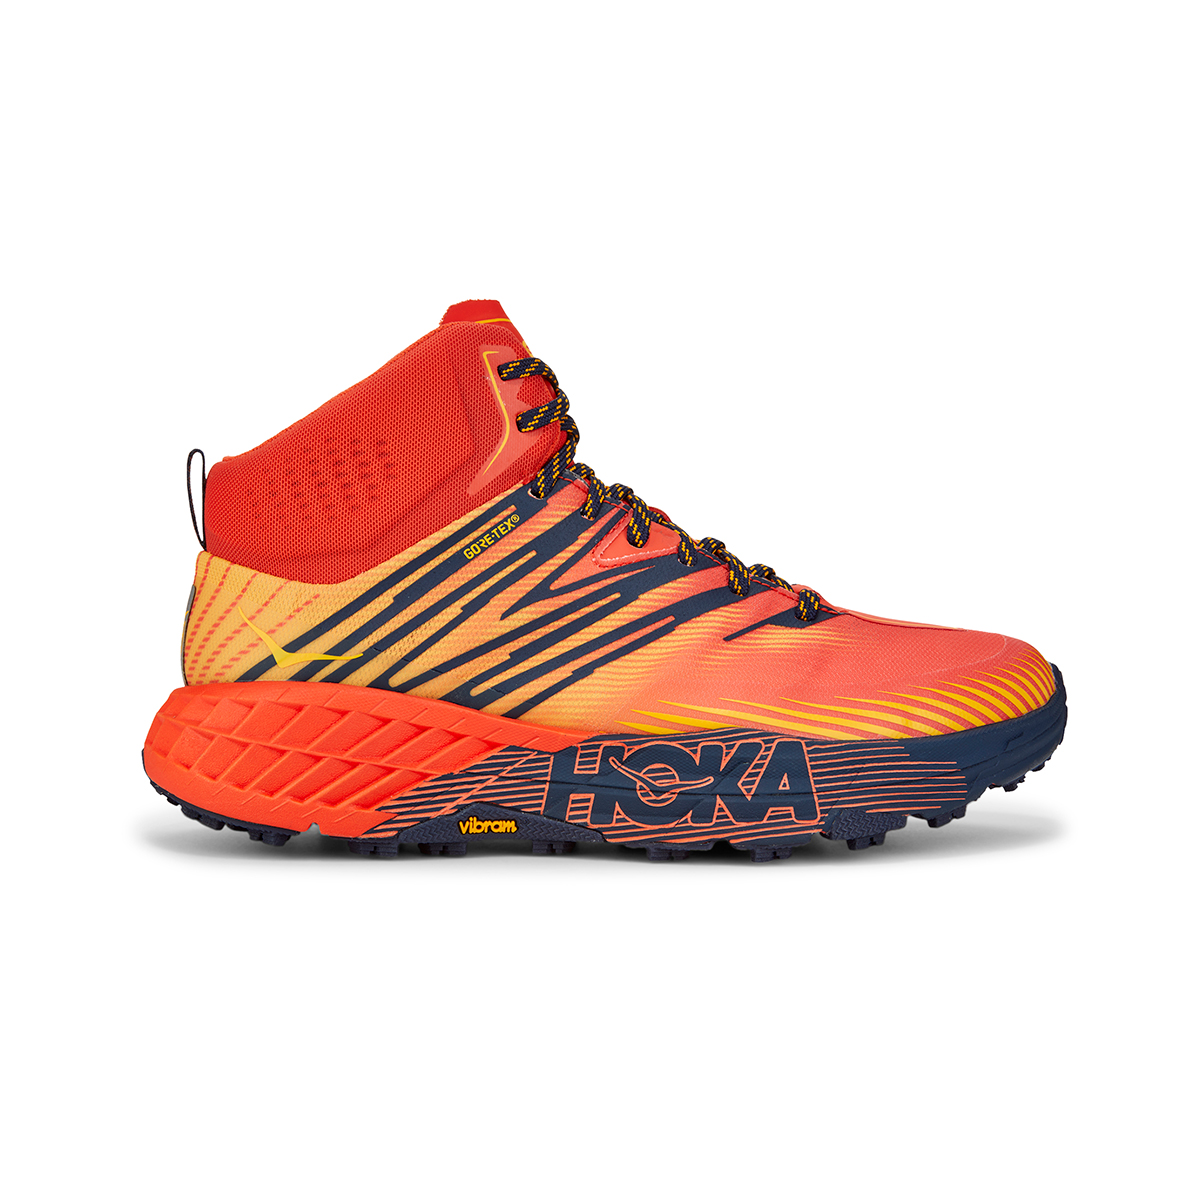 Men's Hoka One One Speedgoat Mid Gore-Tex Trail Hiking Shoe - Color: Mandarin Red / Gold Fusion - Size: 7 - Width: Regular, Mandarin Red / Gold Fusion, large, image 1